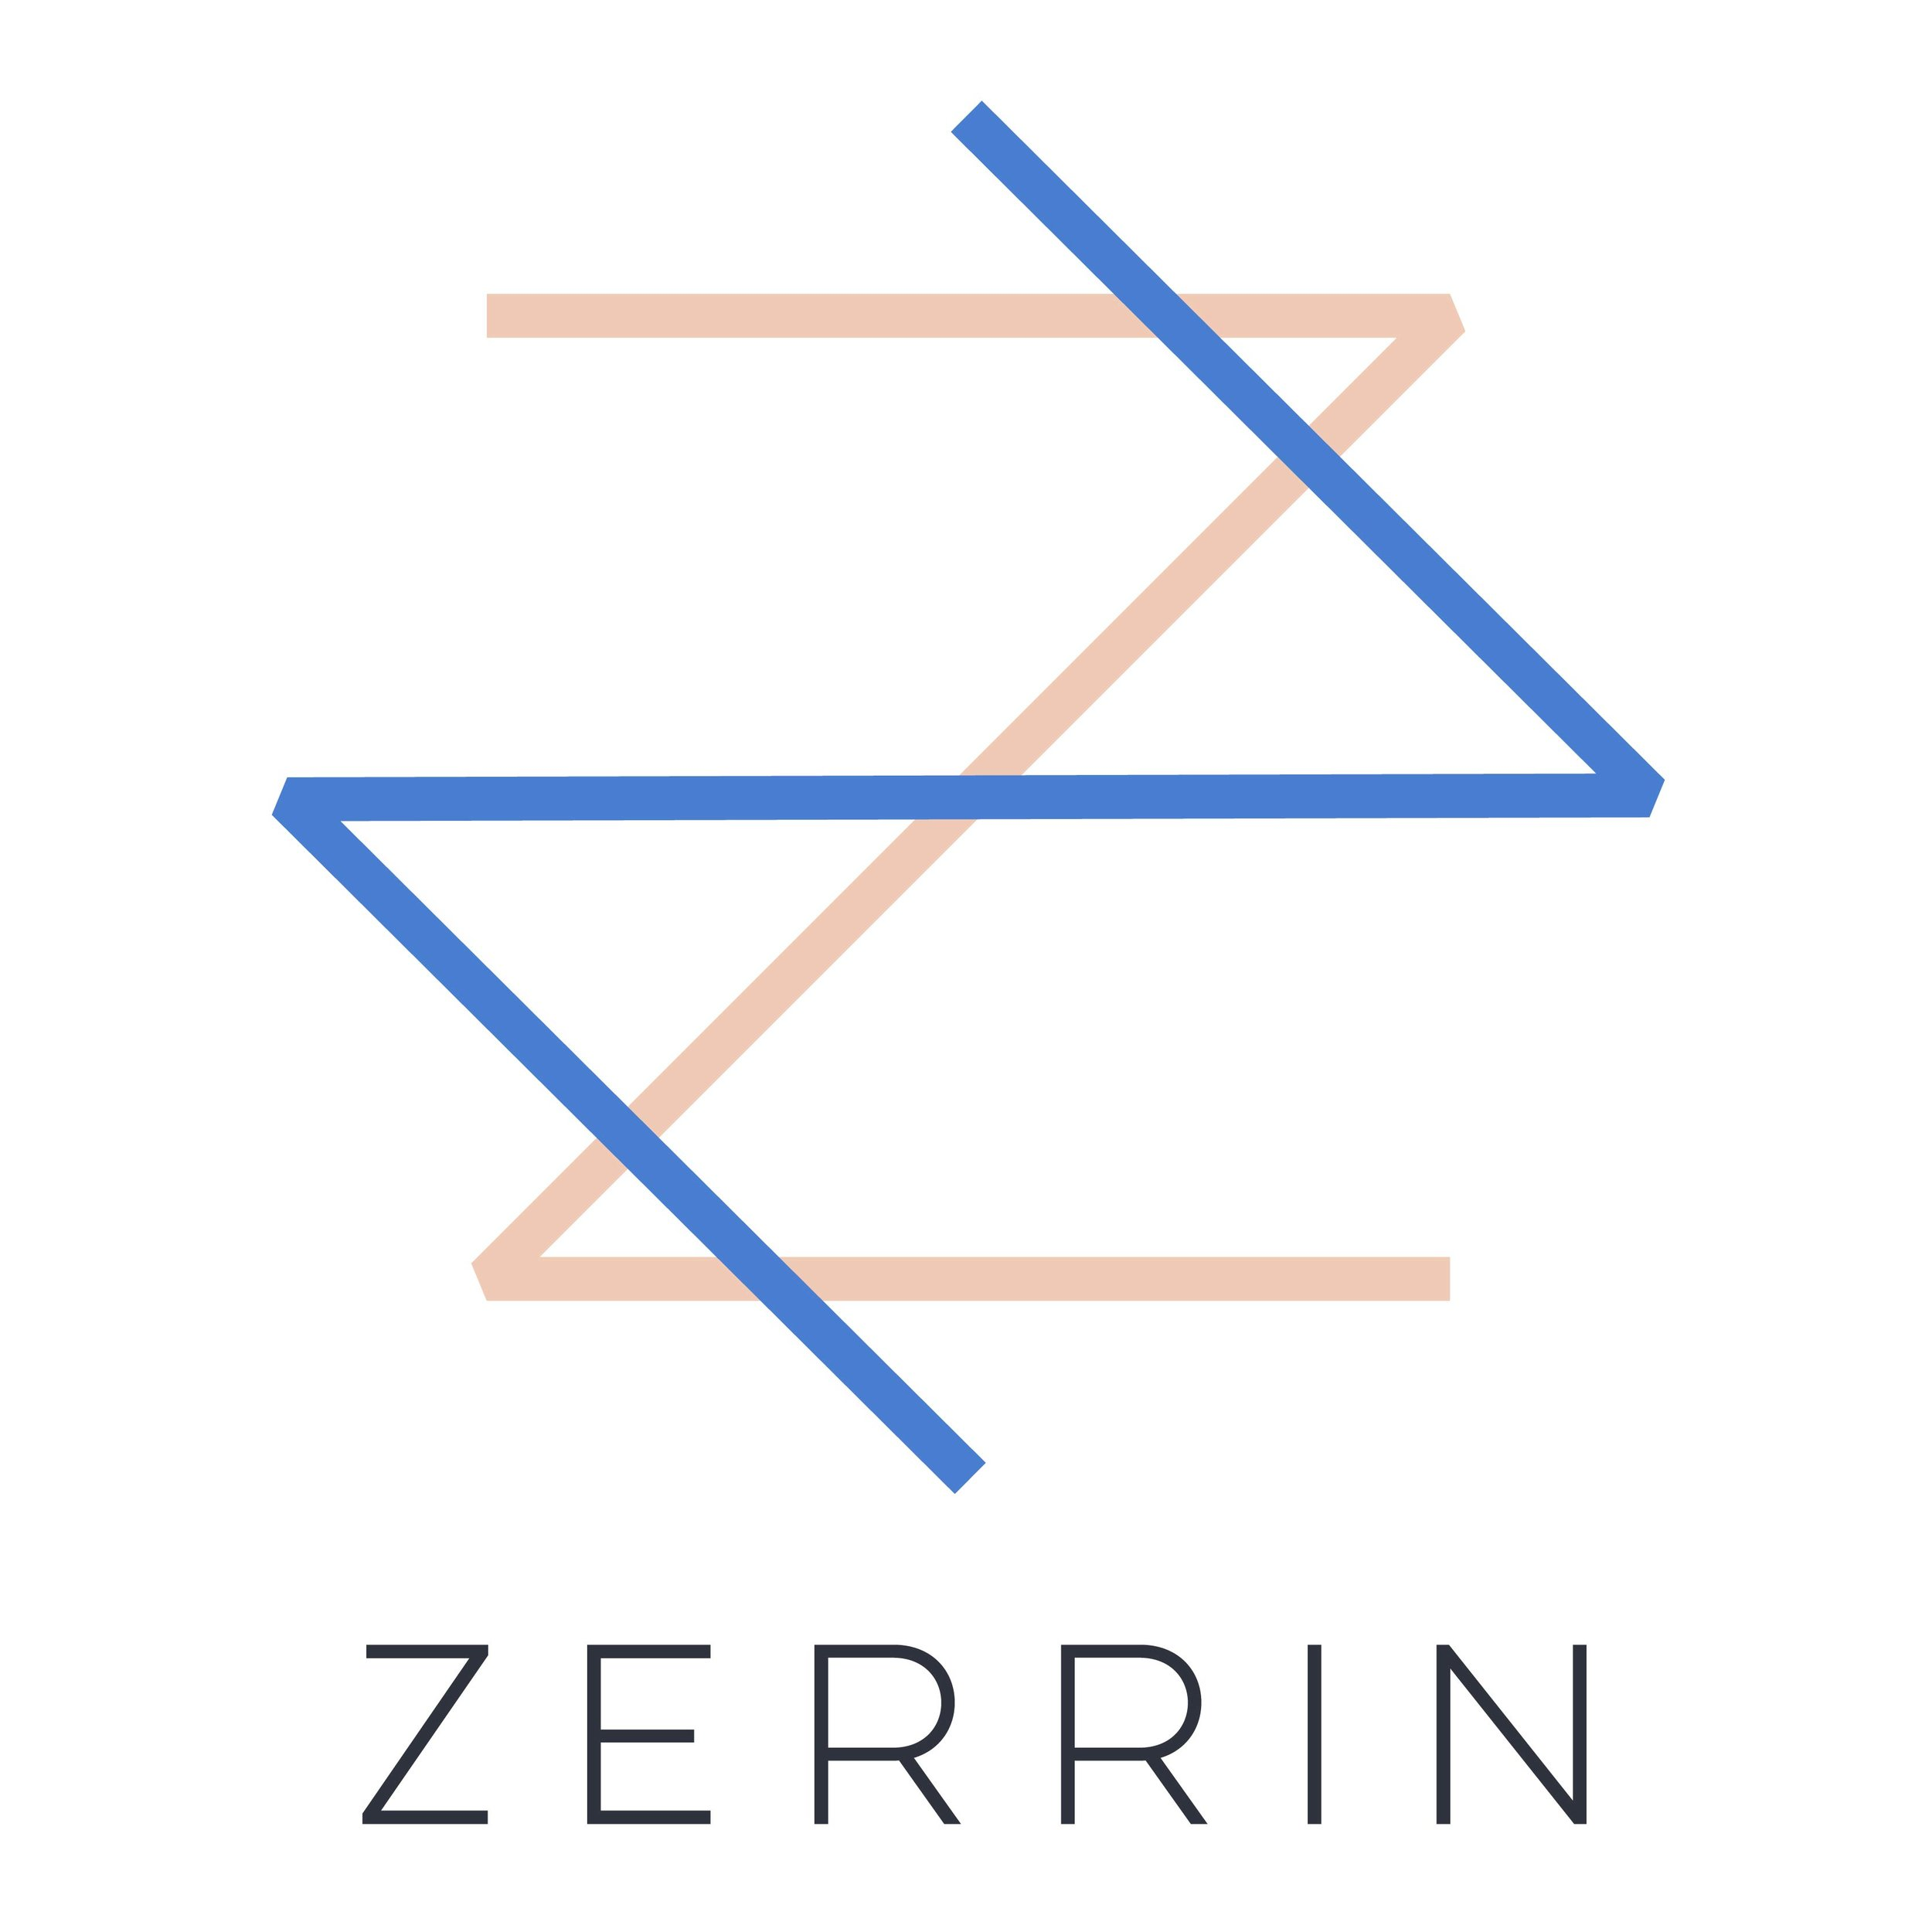 Copy of ZERRIN